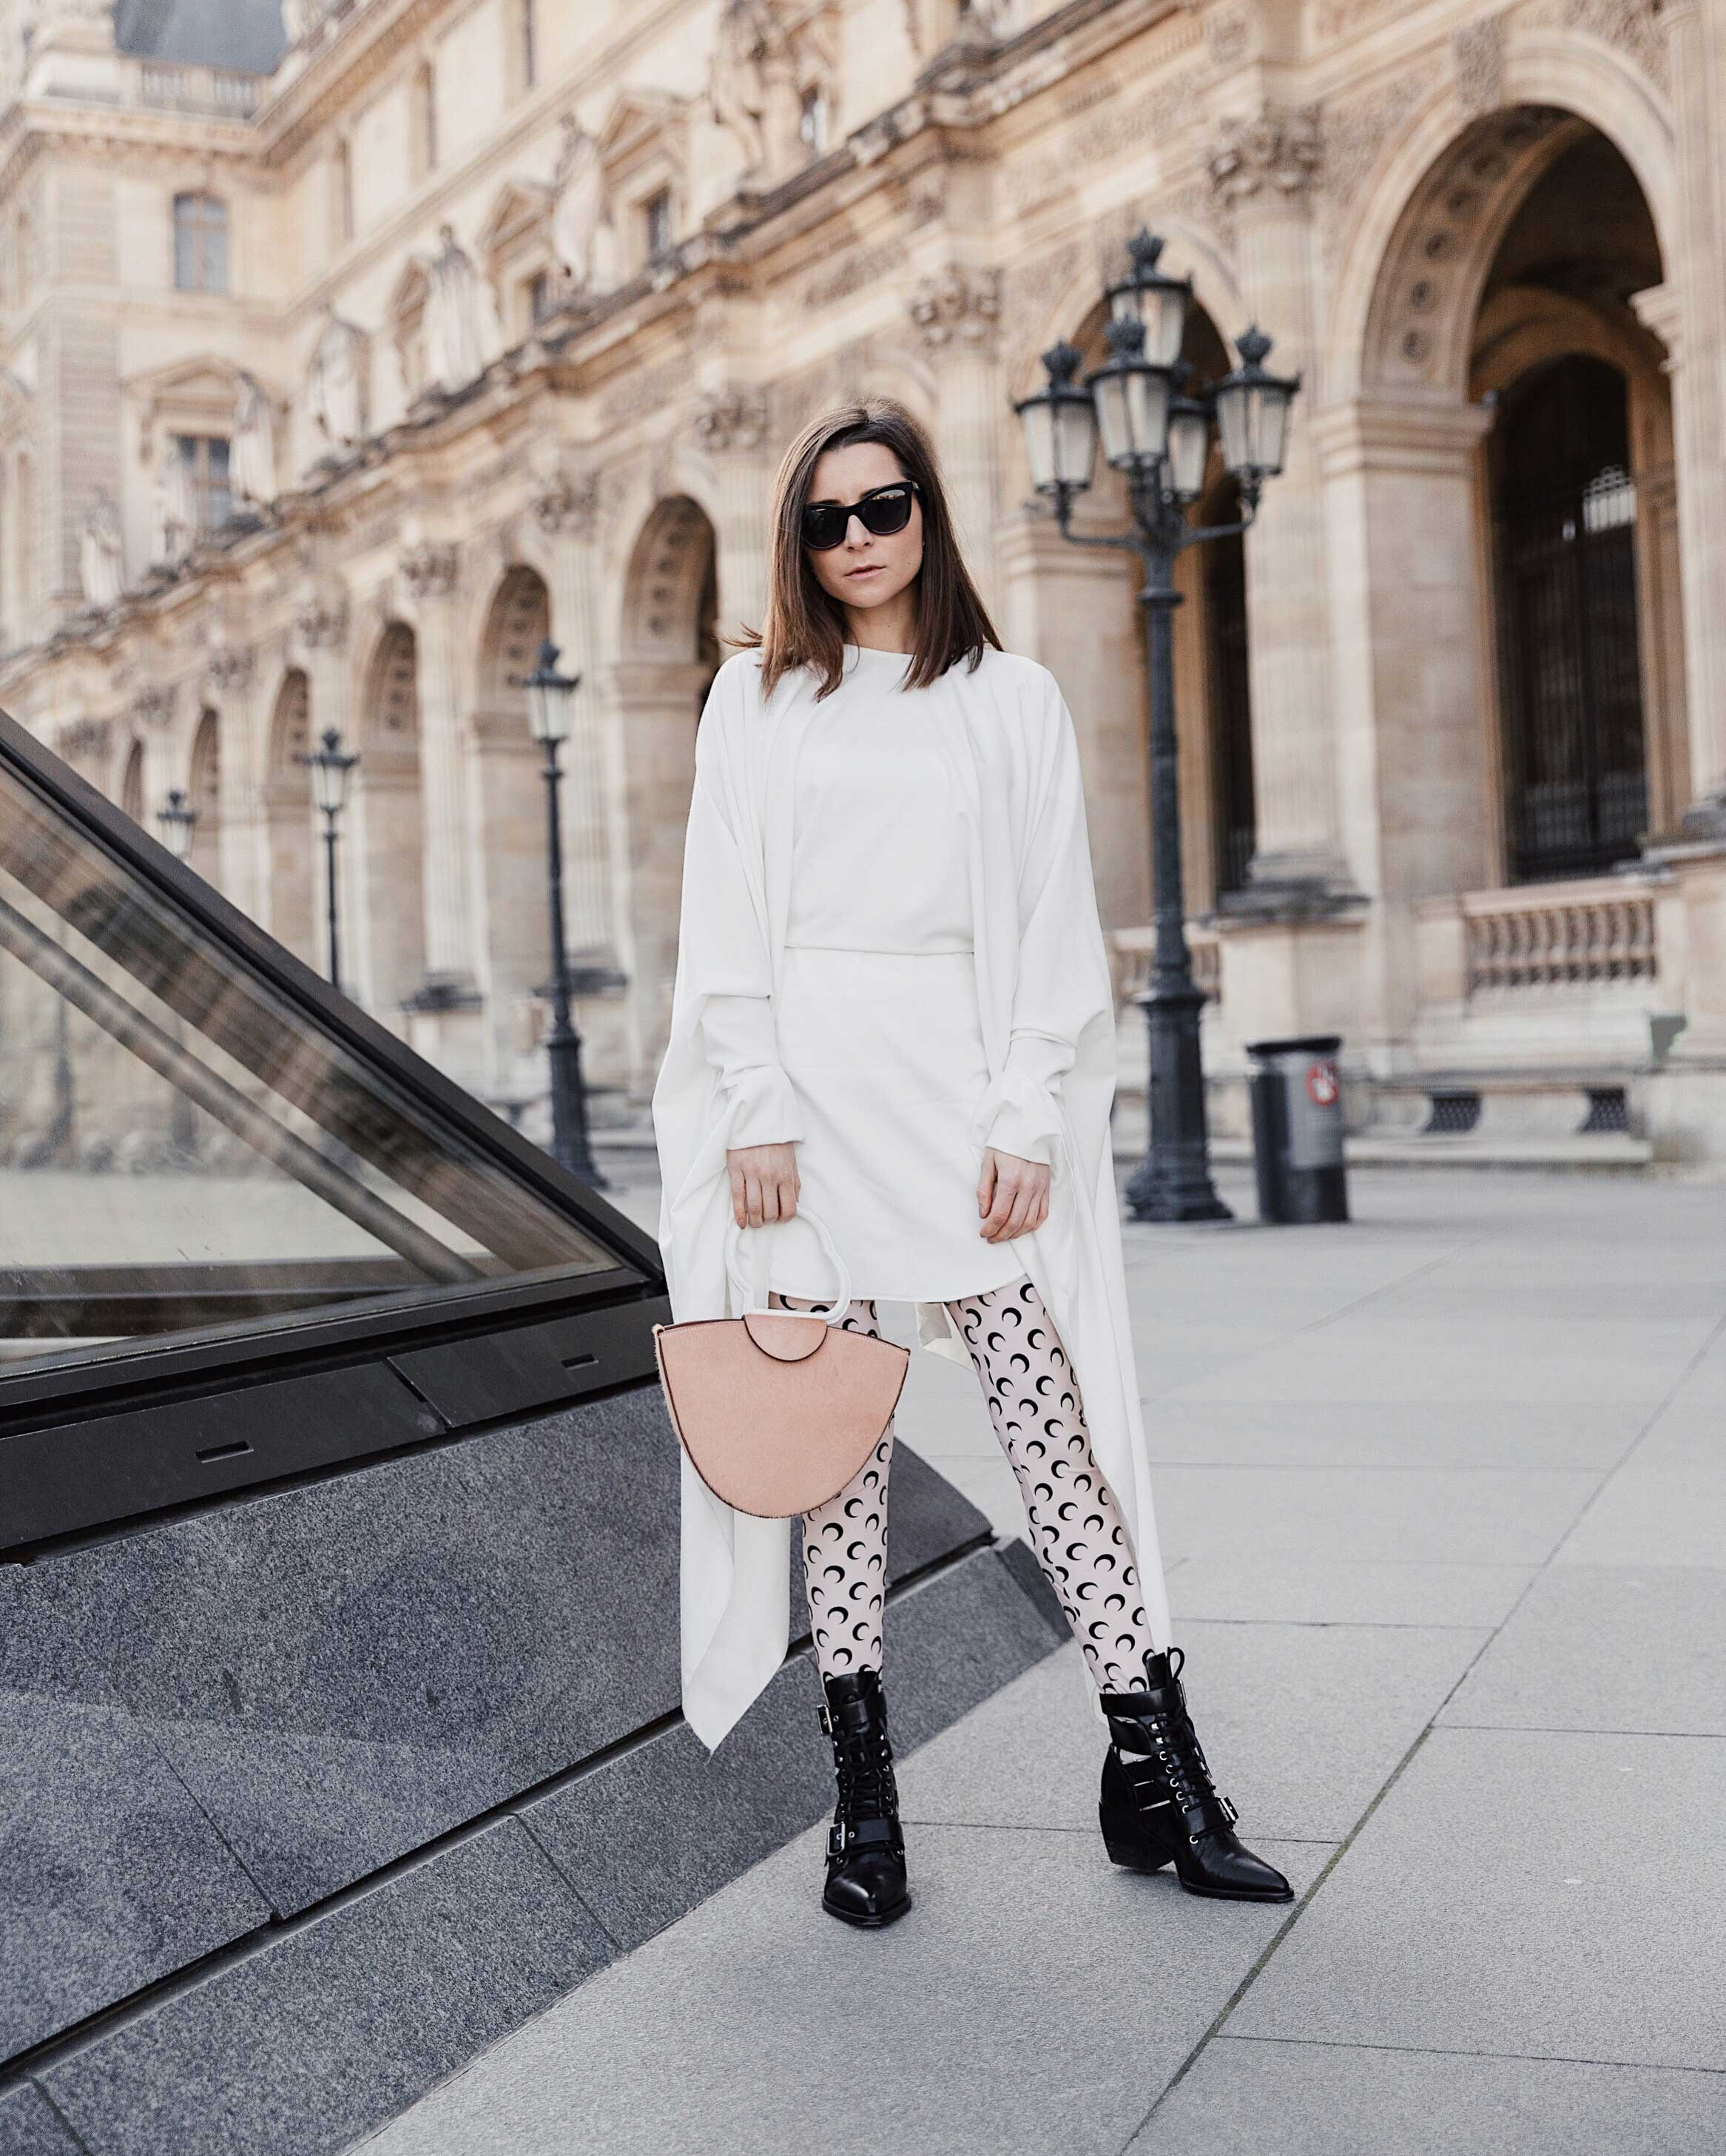 Marine Serre Best Street Style Paris Fashion Week Mars 2019 Julia Comil / French Fashion Blogger in Los Angeles Outfit for PFW Fall Winter 2019 show - Tights marine serre, boots rylee Chloe, dress Paula Knorr, bag danse lente, sunglasses chanel